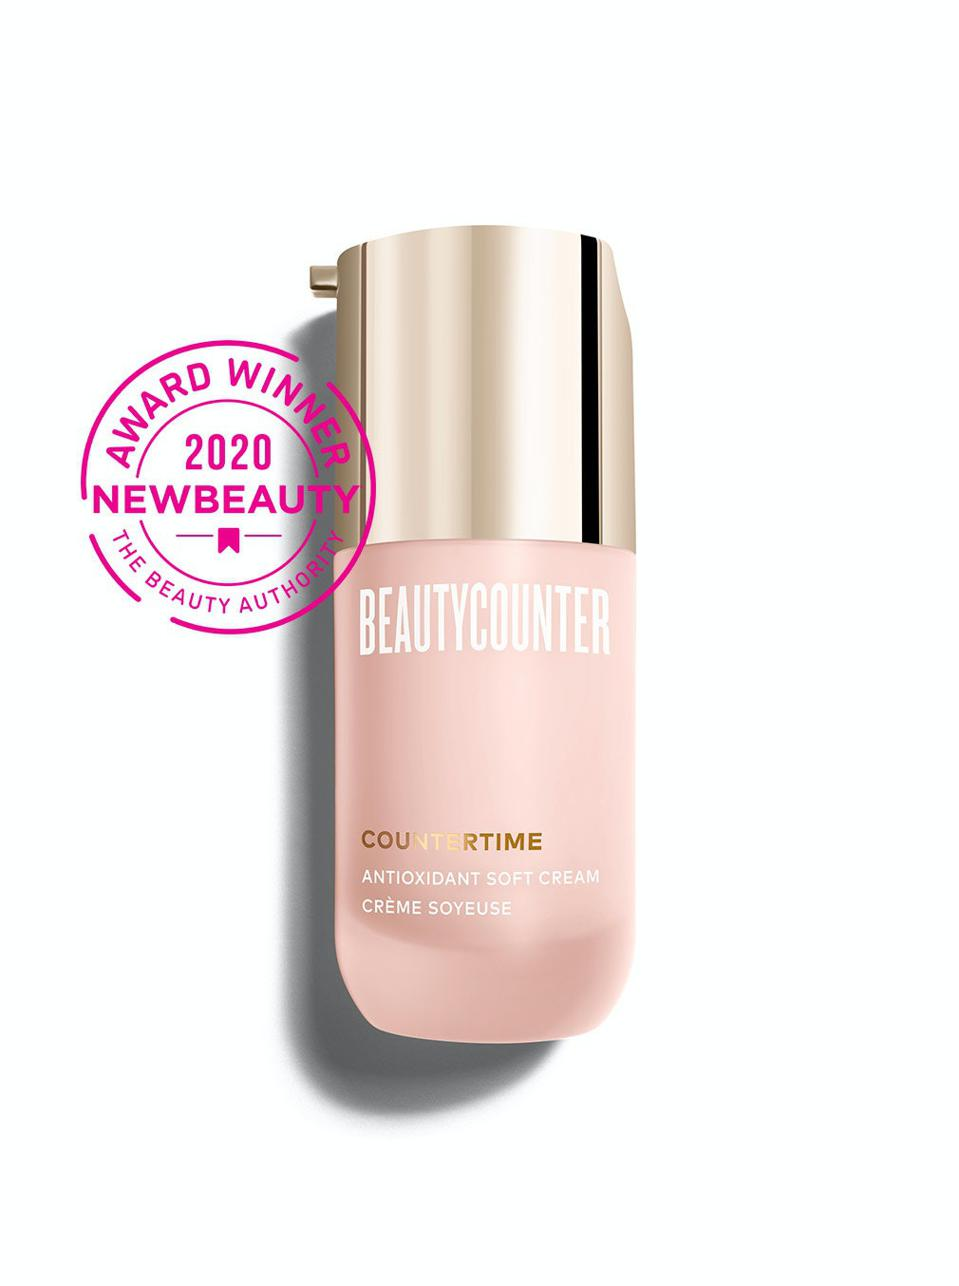 Beautycounter Countertime Lipid Defense Cleansing Oil and Antioxidant Soft Cream